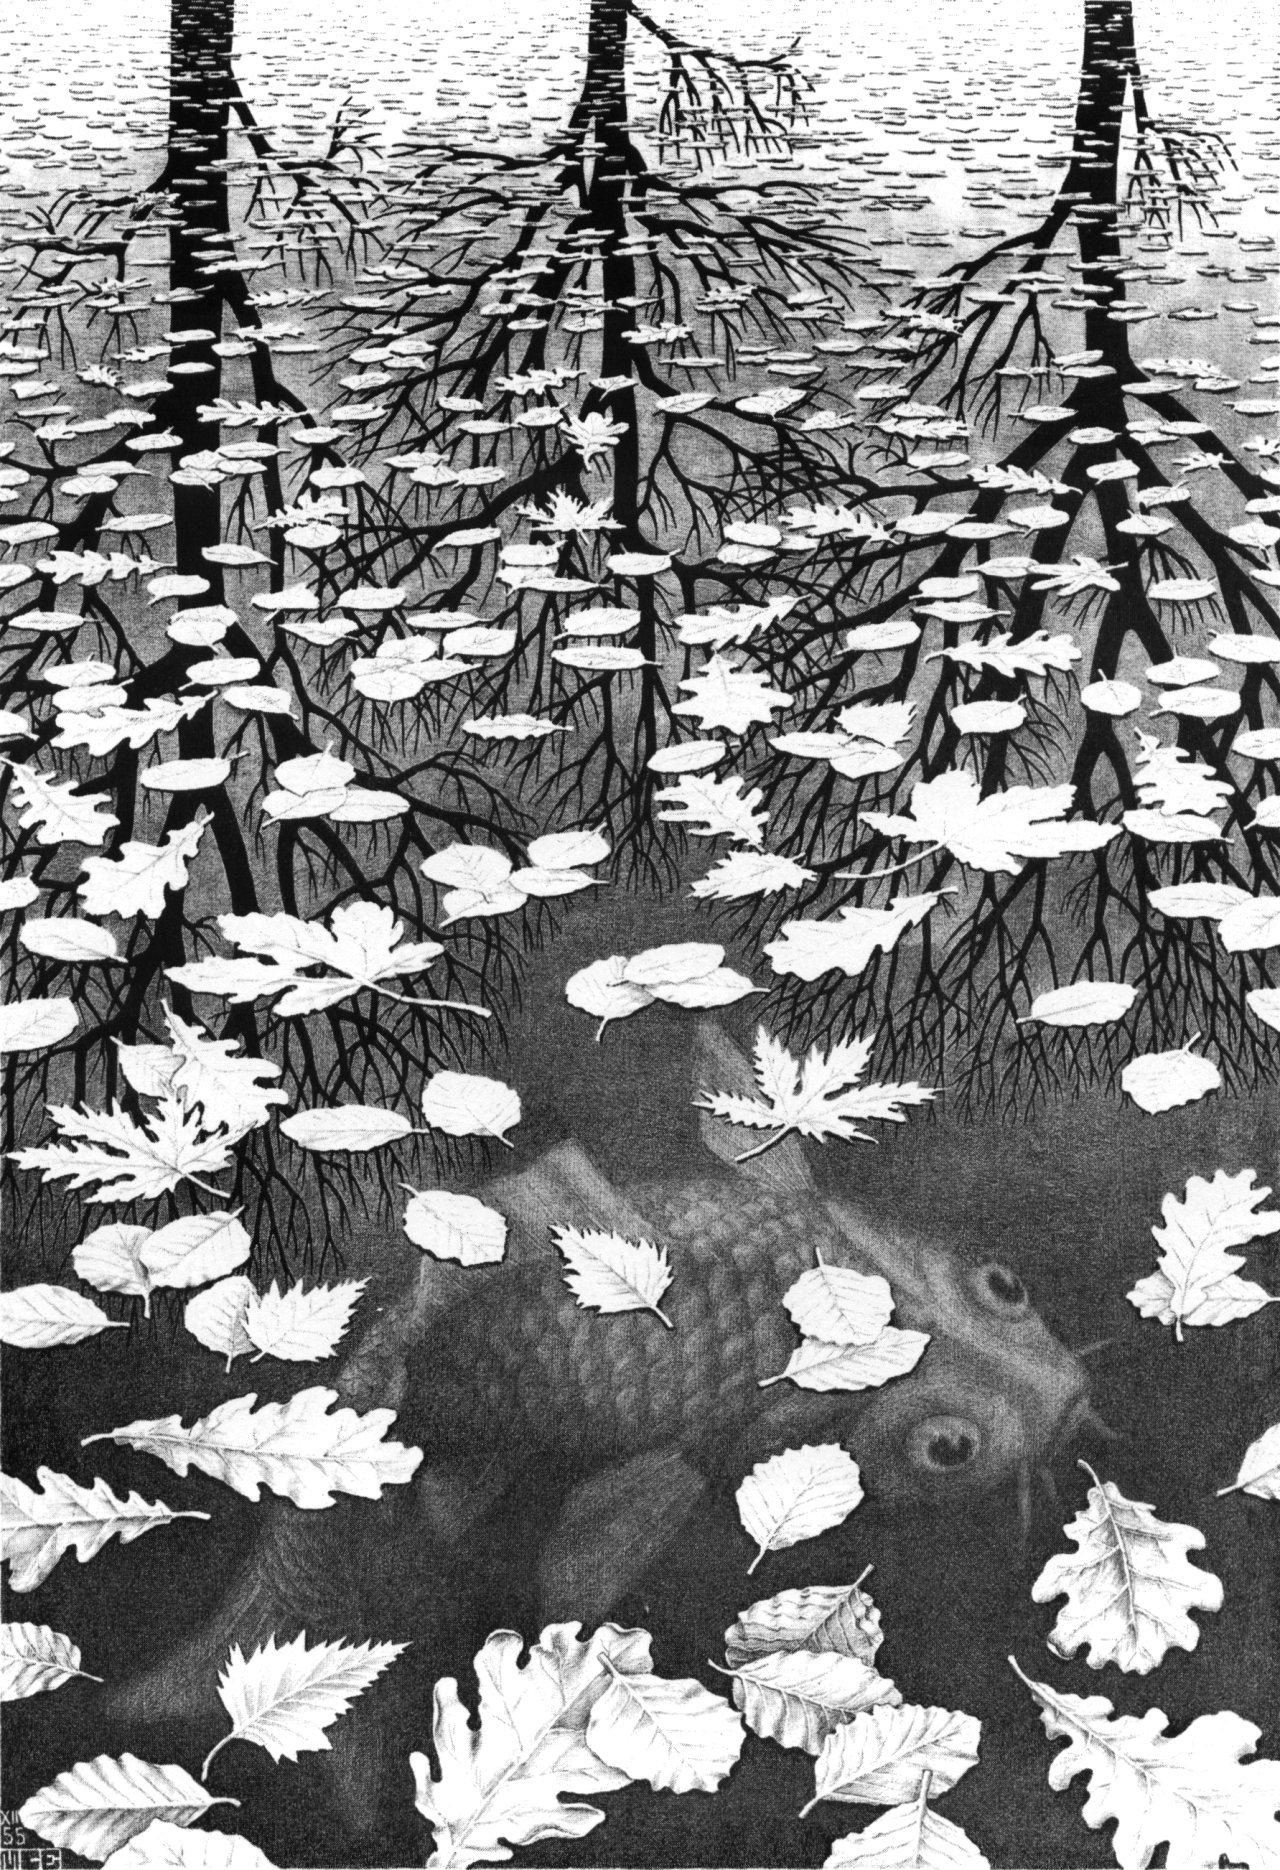 the life and work of maurits cornelis escher a dutch artist Maurits cornelis escher (dutch pronunciation: [ˈmʌurɪts kɔrˈneːlɪs ˈɛsxər] 17 june 1898 - 27 march 1972), or commonly m c escher, was a dutch graphic artist who made mathematically inspired woodcuts, lithographs, and mezzotintshis work features mathematical objects and operations.